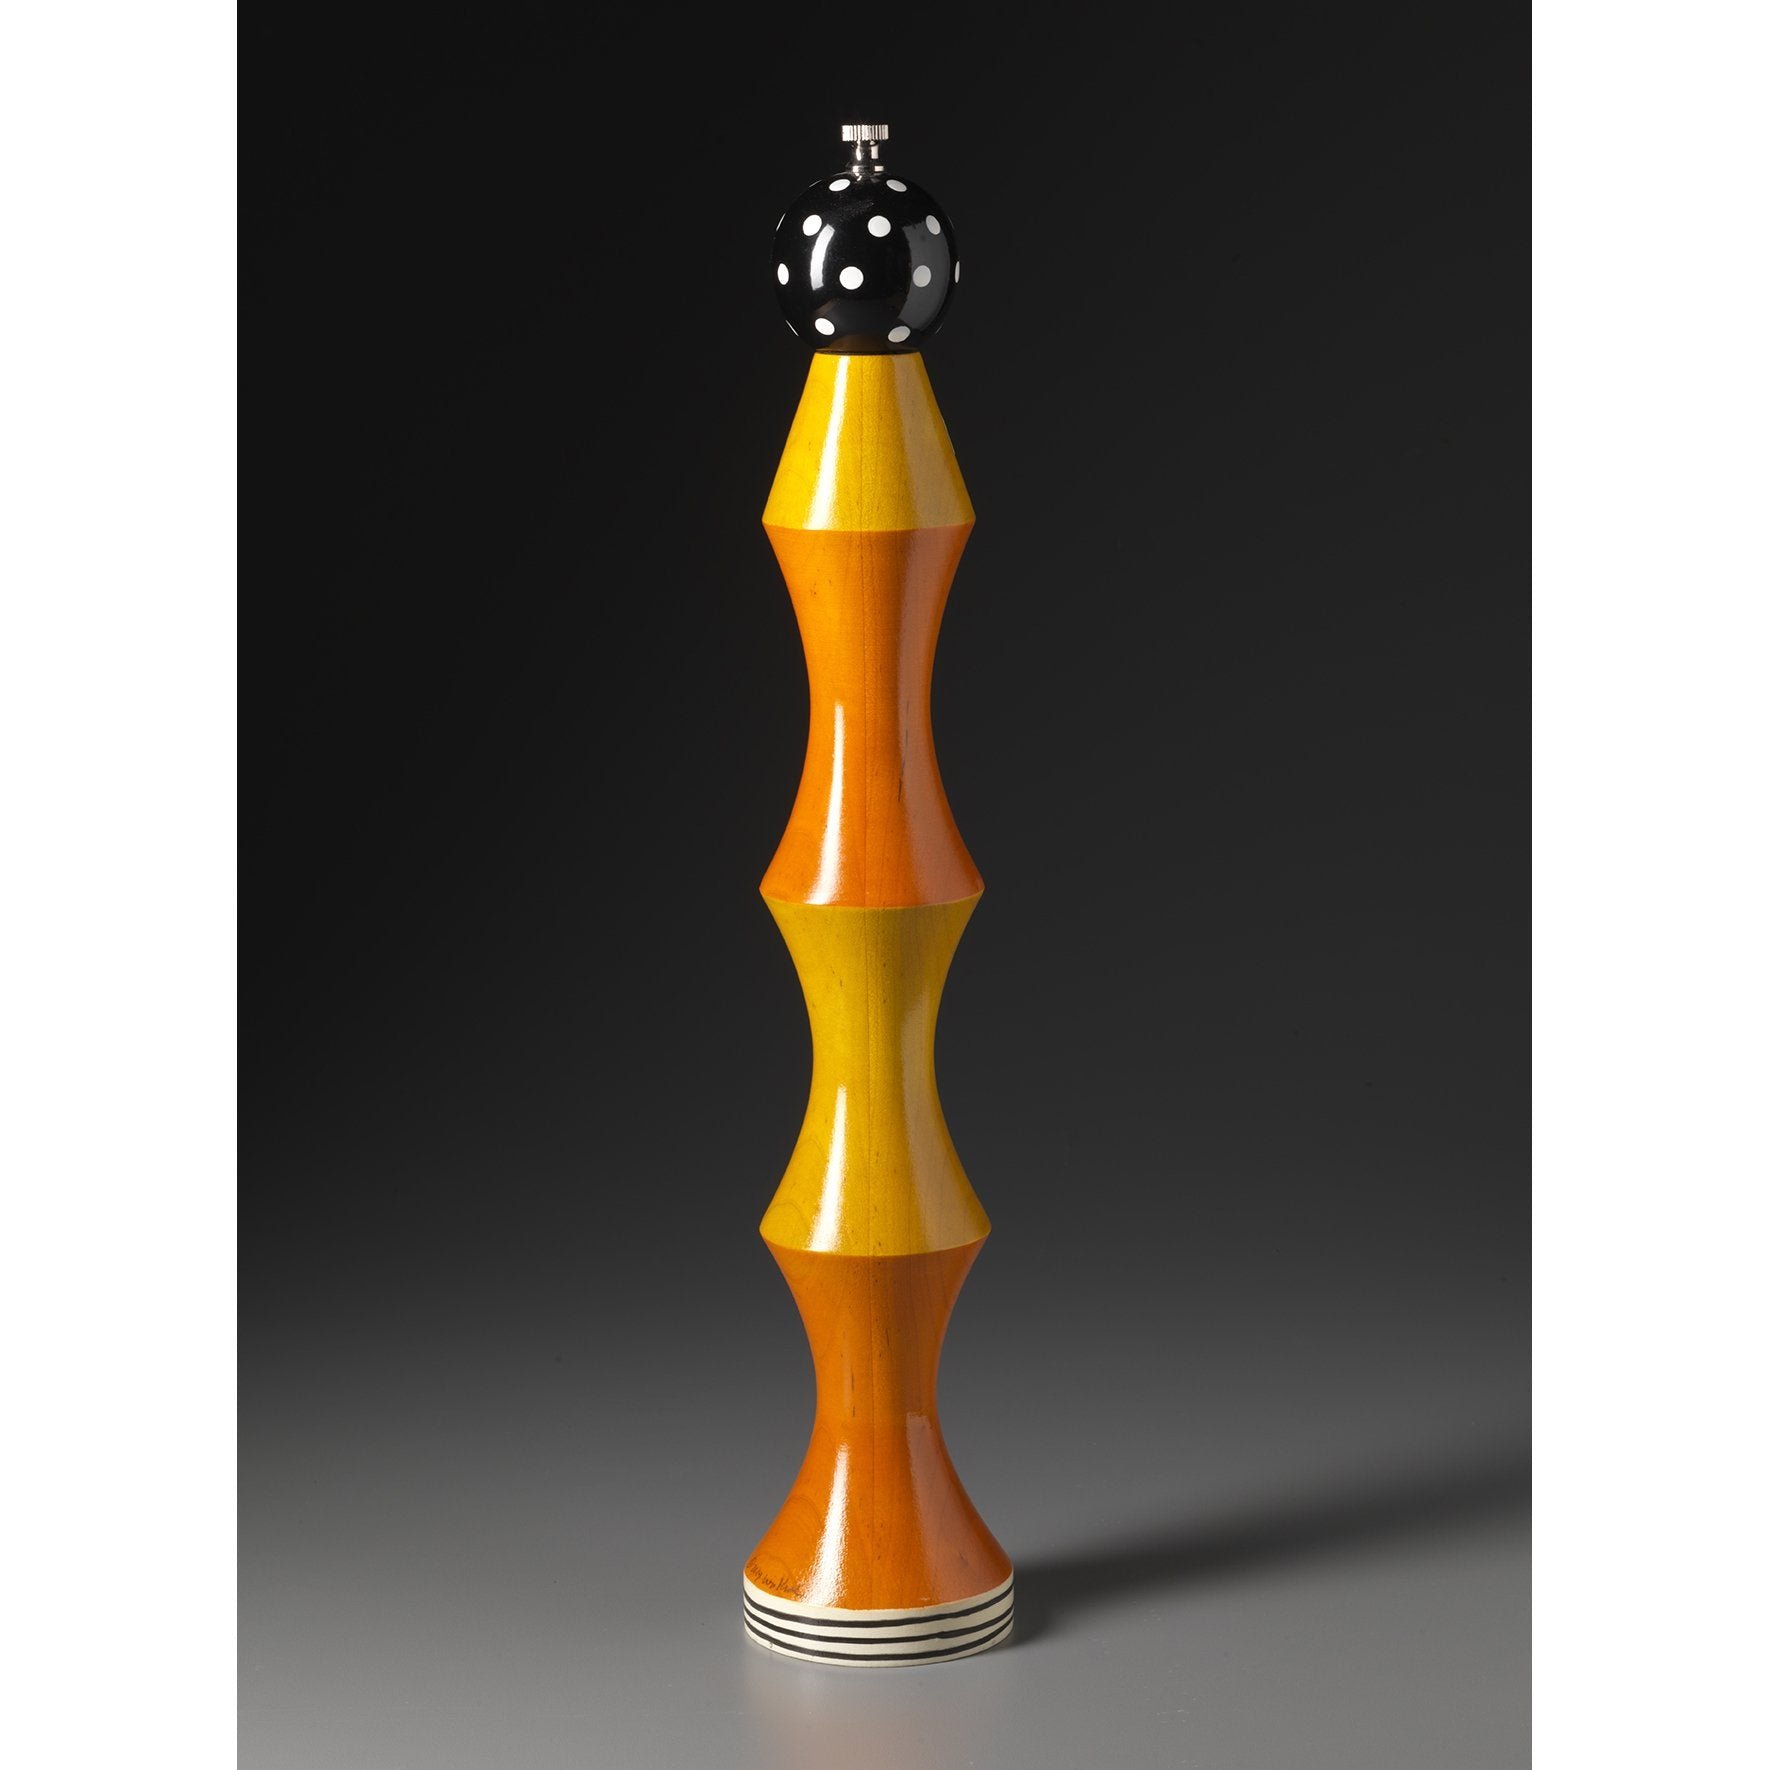 Wood Salt And Pepper Mill Grinder In Orange Yellow Black White Raw Design Sweetheart Gallery Contemporary Craft Gallery Fine American Craft Art Design Handmade Home Personal Accessories